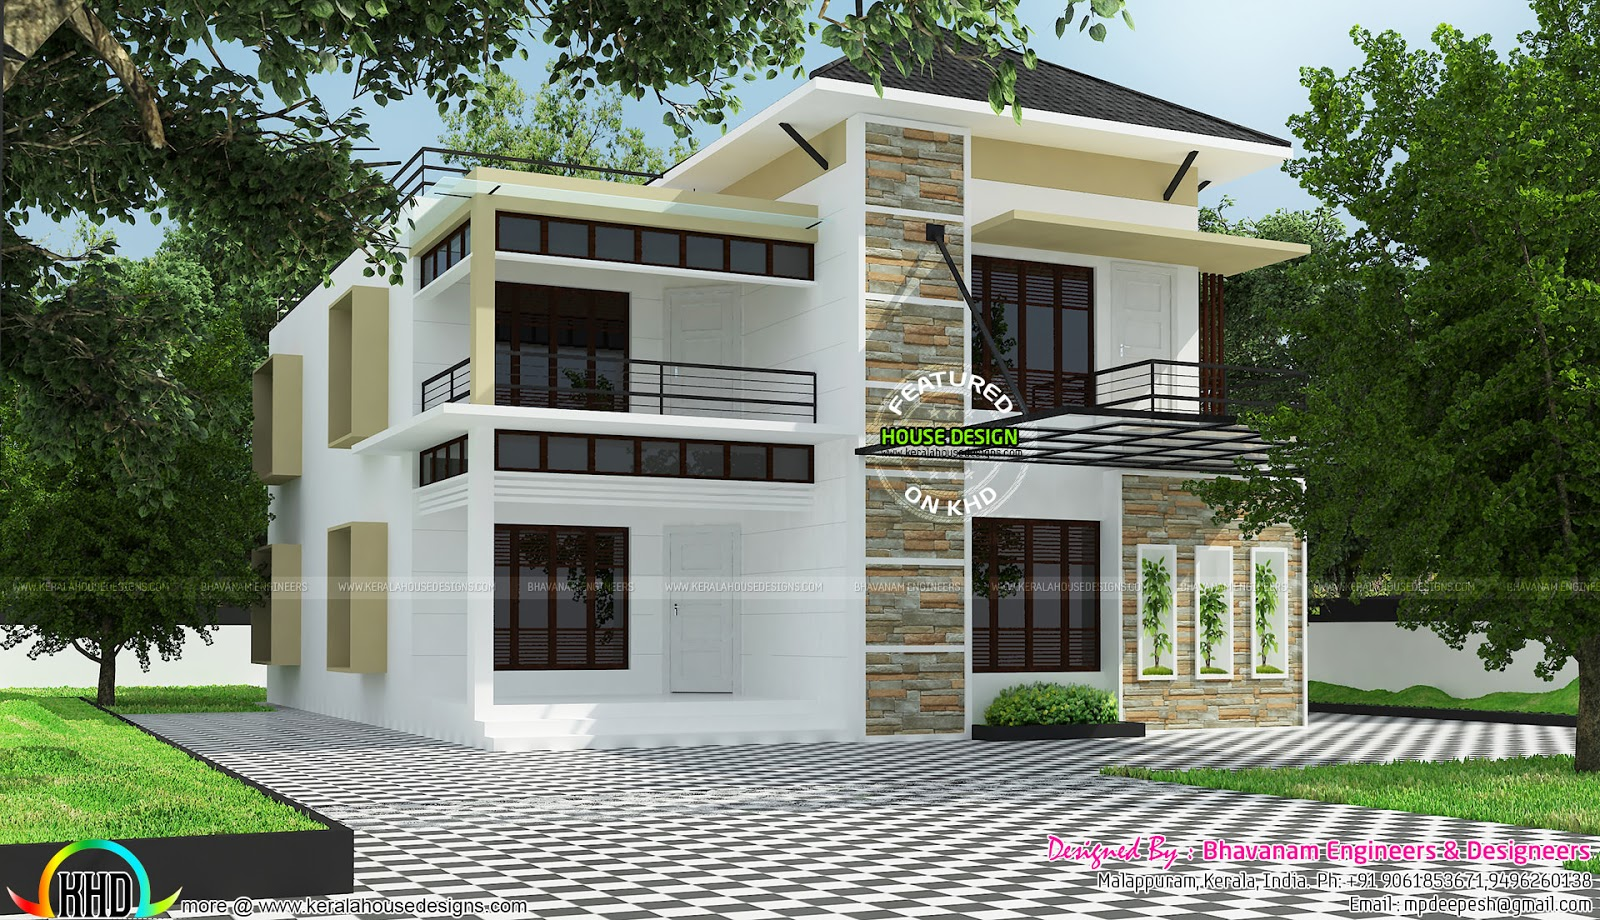 Old house remodeling plan kerala home design and floor plans for Remodeling old homes